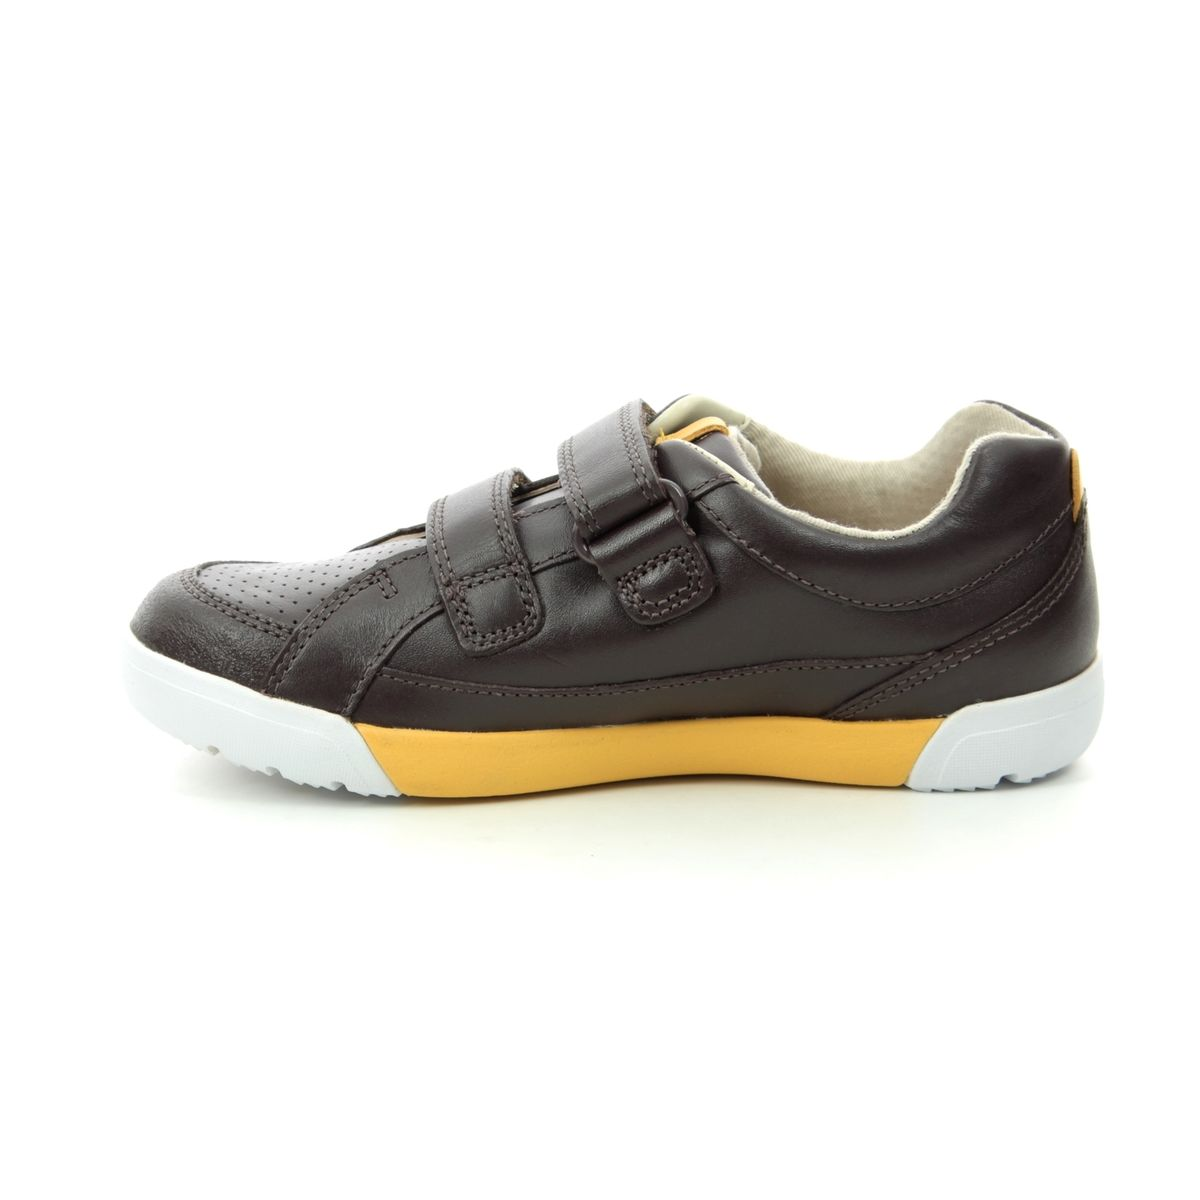 CLARKS Emery Walk K Junior Boys Leather Casual Shoe Size 10 to 13.5